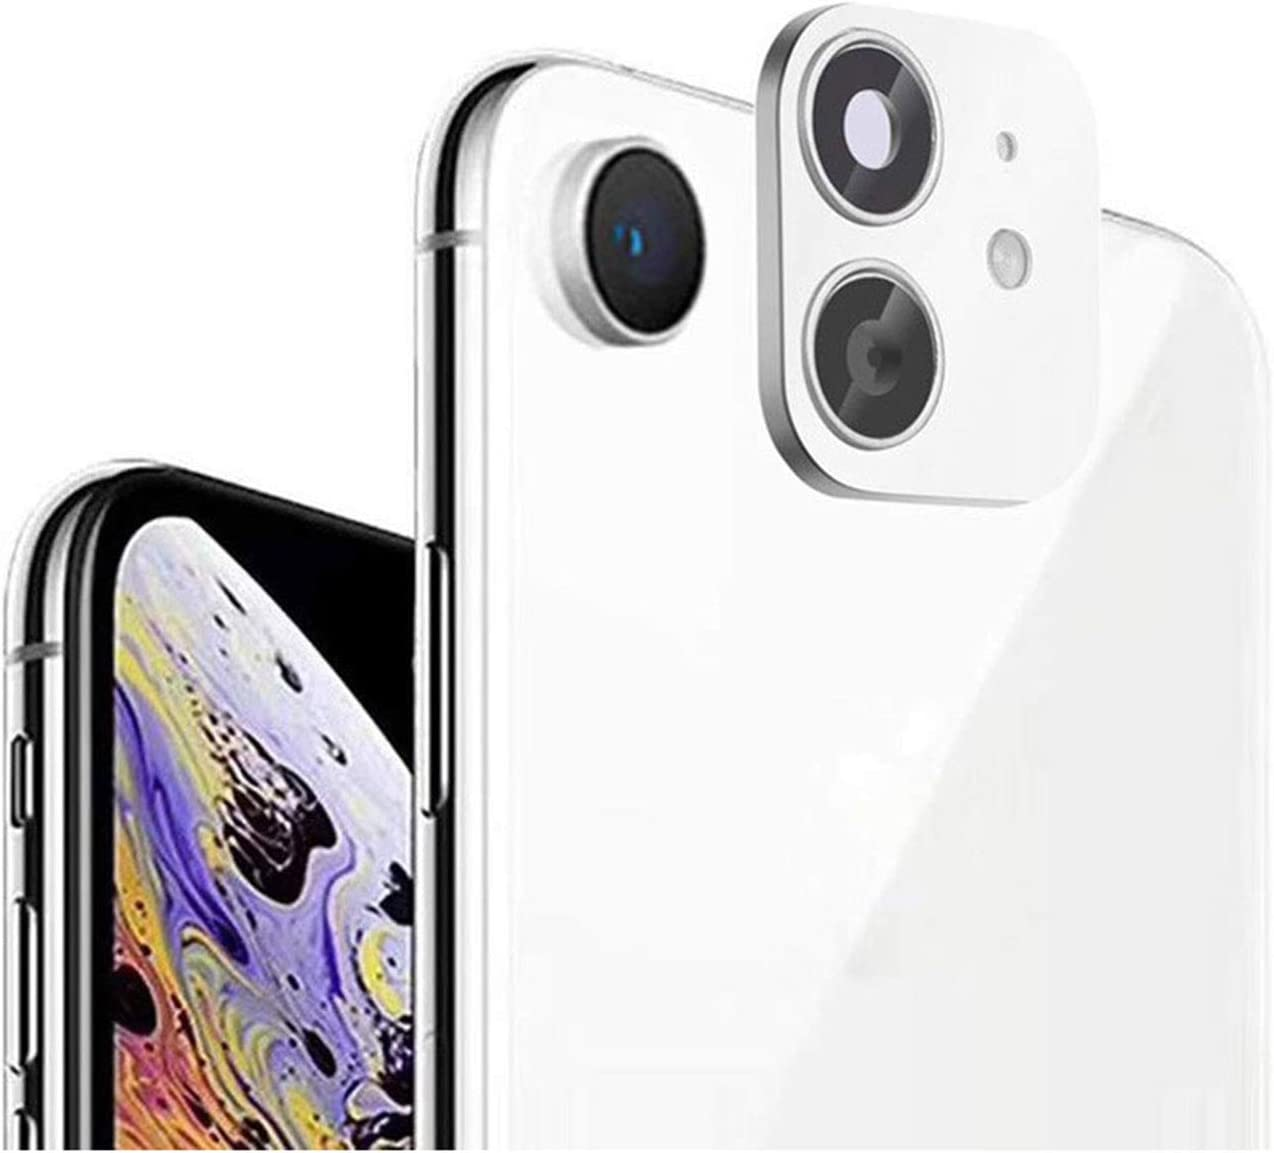 iPhone XR/X Convert to iPhone 11/11 Pro/11 Pro Max Lens Sticker,Dikkar Camera Lens Protector for iPhone XR/X/XS/XS Max,Upgraded Camera Cover Anti-Scratch Tempered Glass film,Change to New iPhone